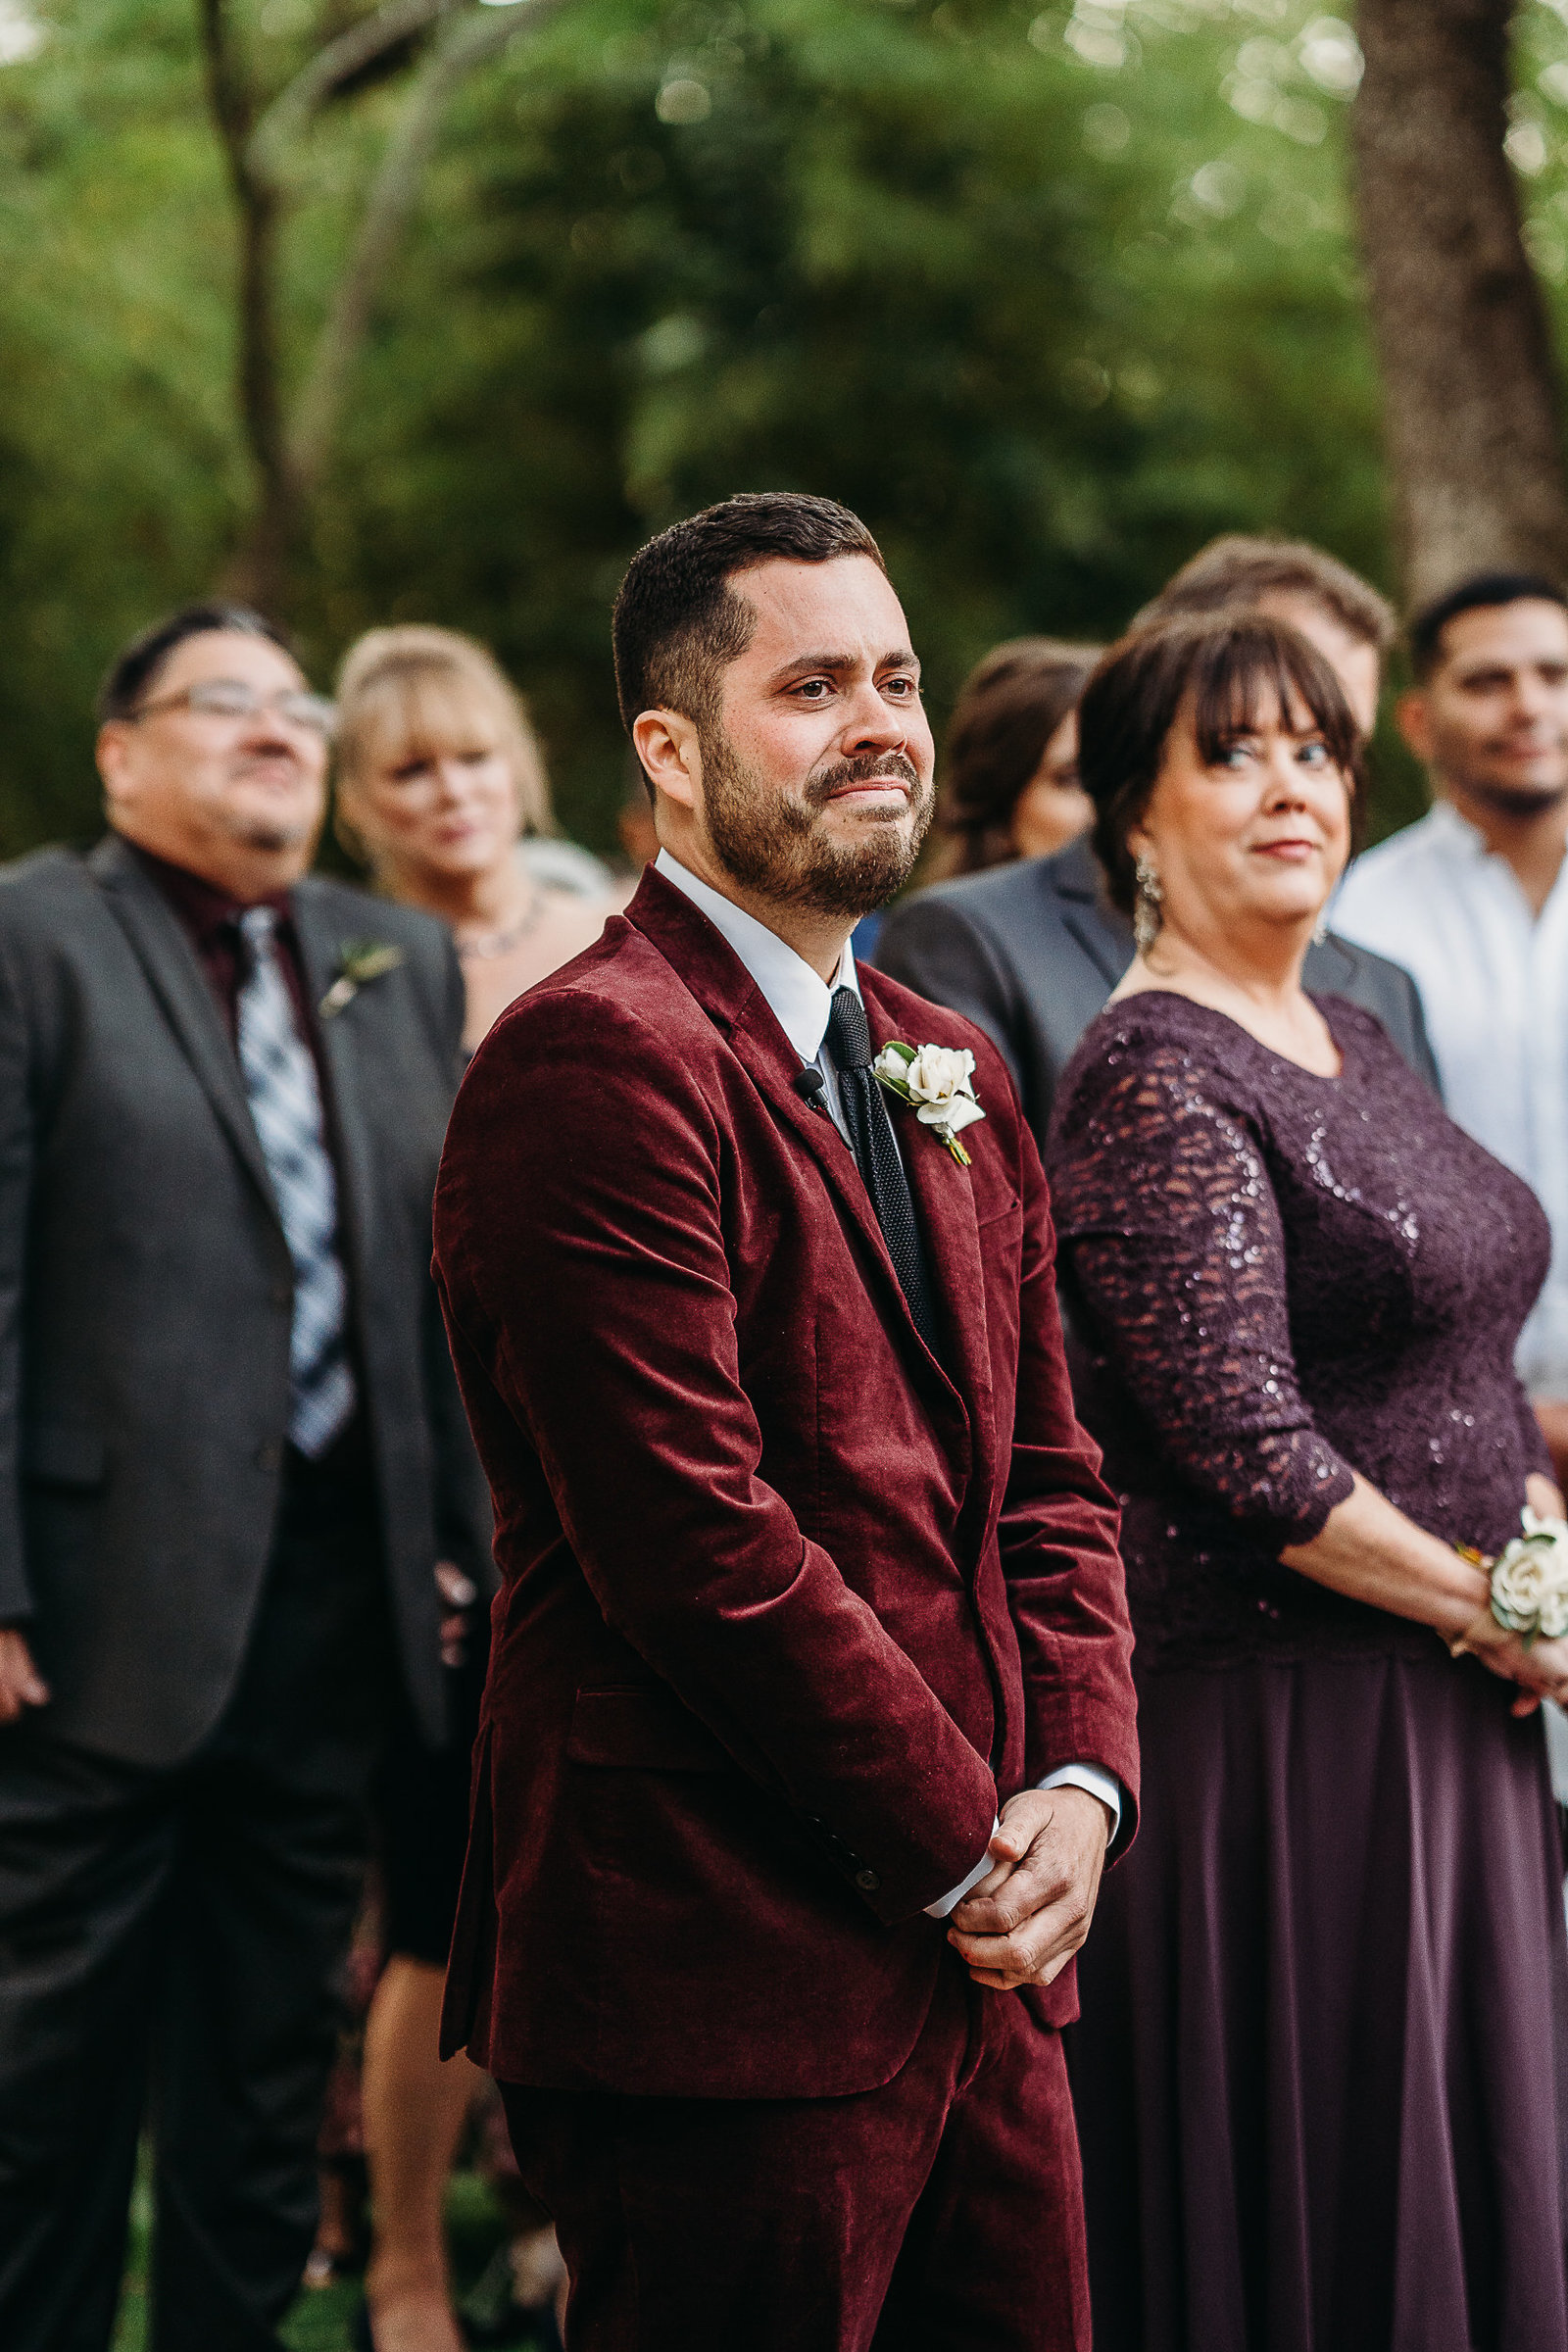 groom cries when he sees bride coming down aisle